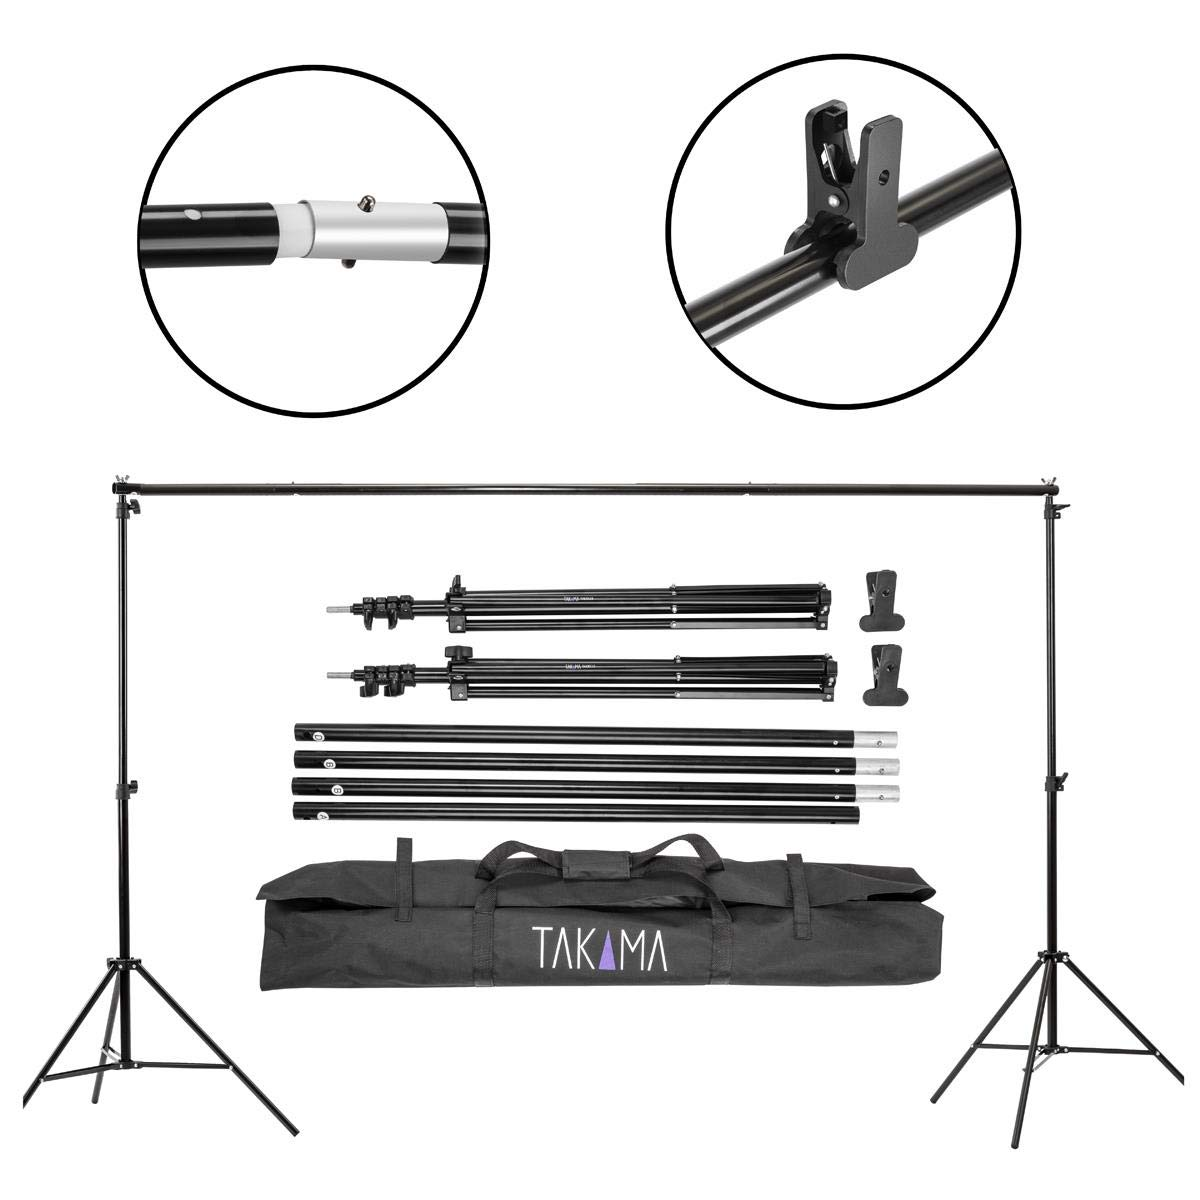 Takama Photo Video Studio 10Ft Adjustable Backdrop Support System Light Stands with Background Holder Kit